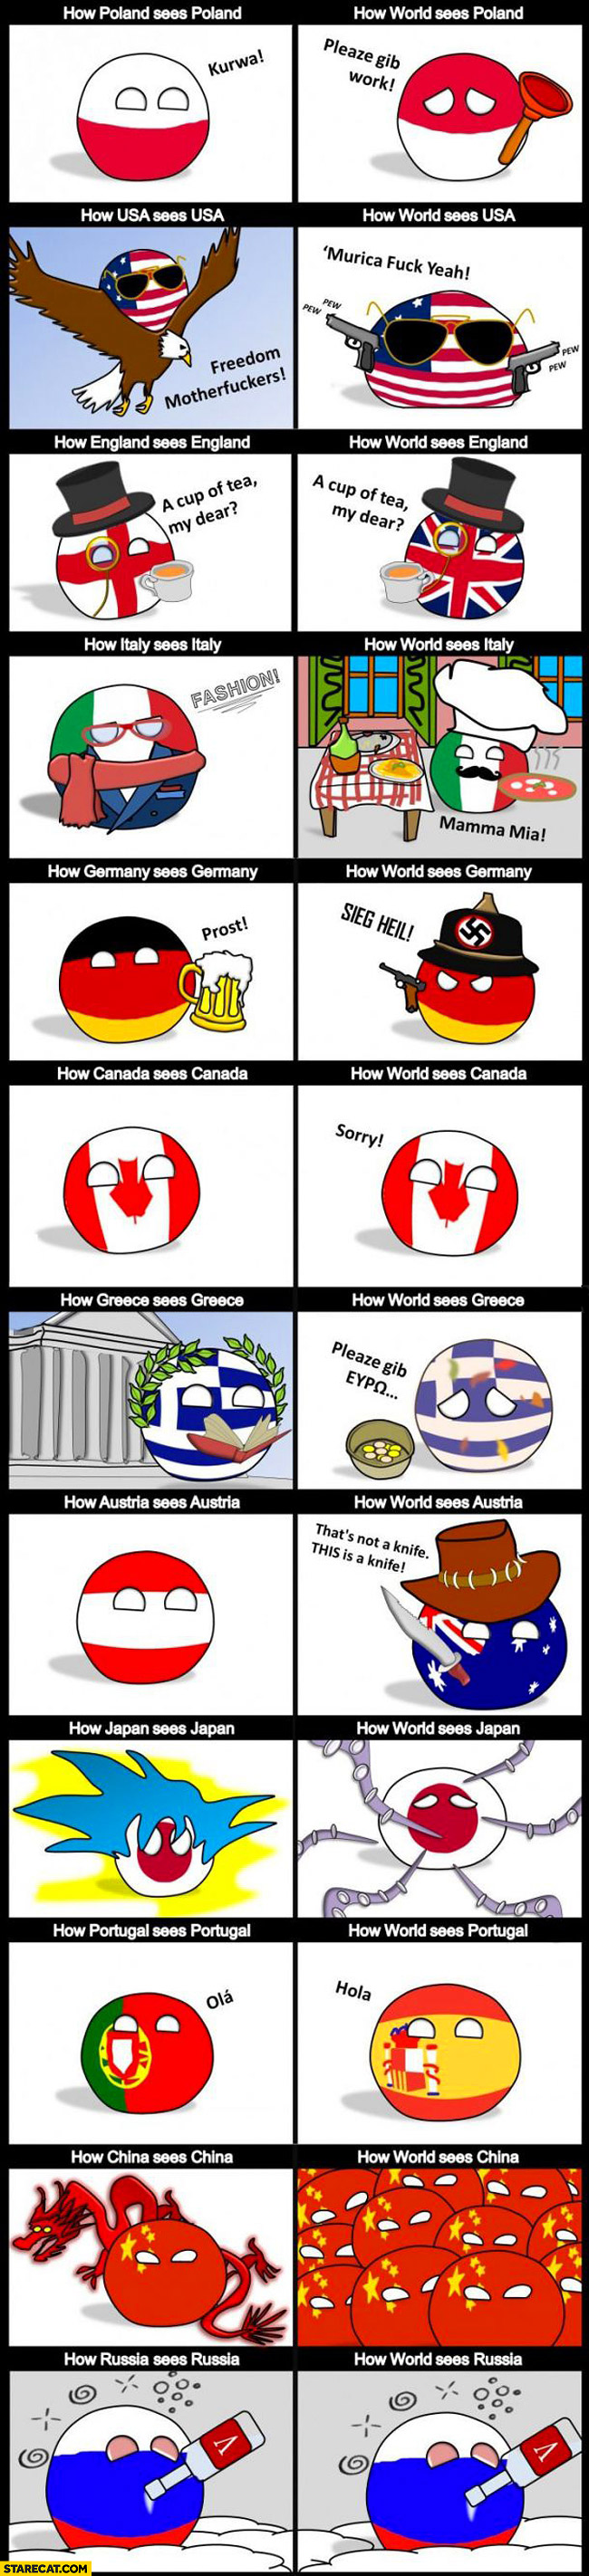 How countries see themselves how world see countries ball